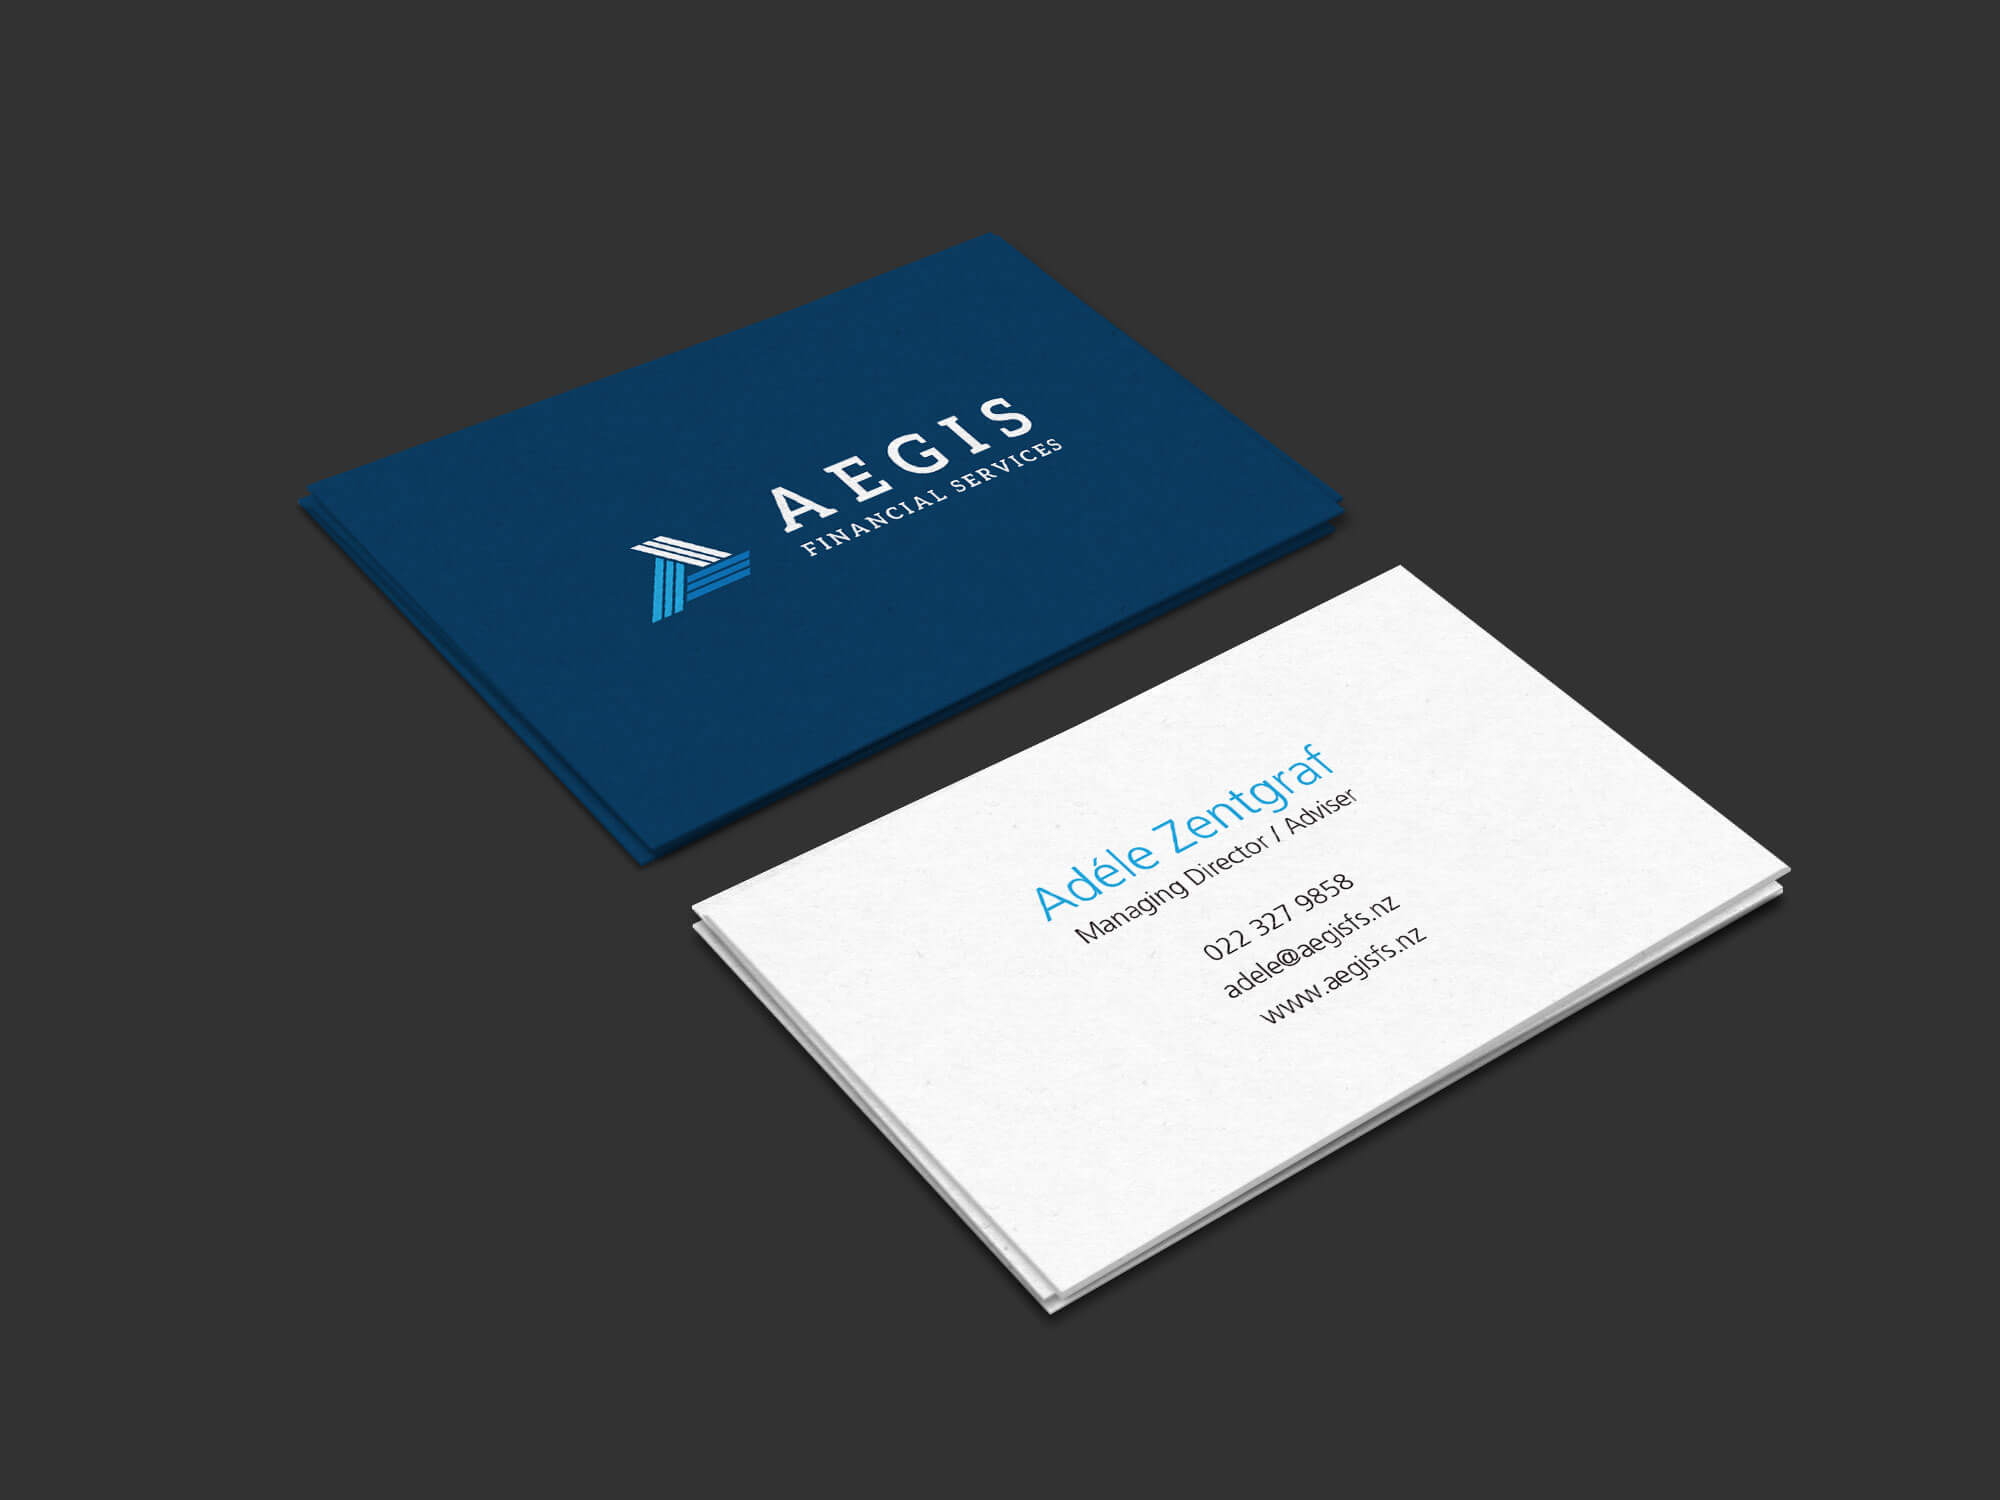 Logo and business card for Aegis Financial Services